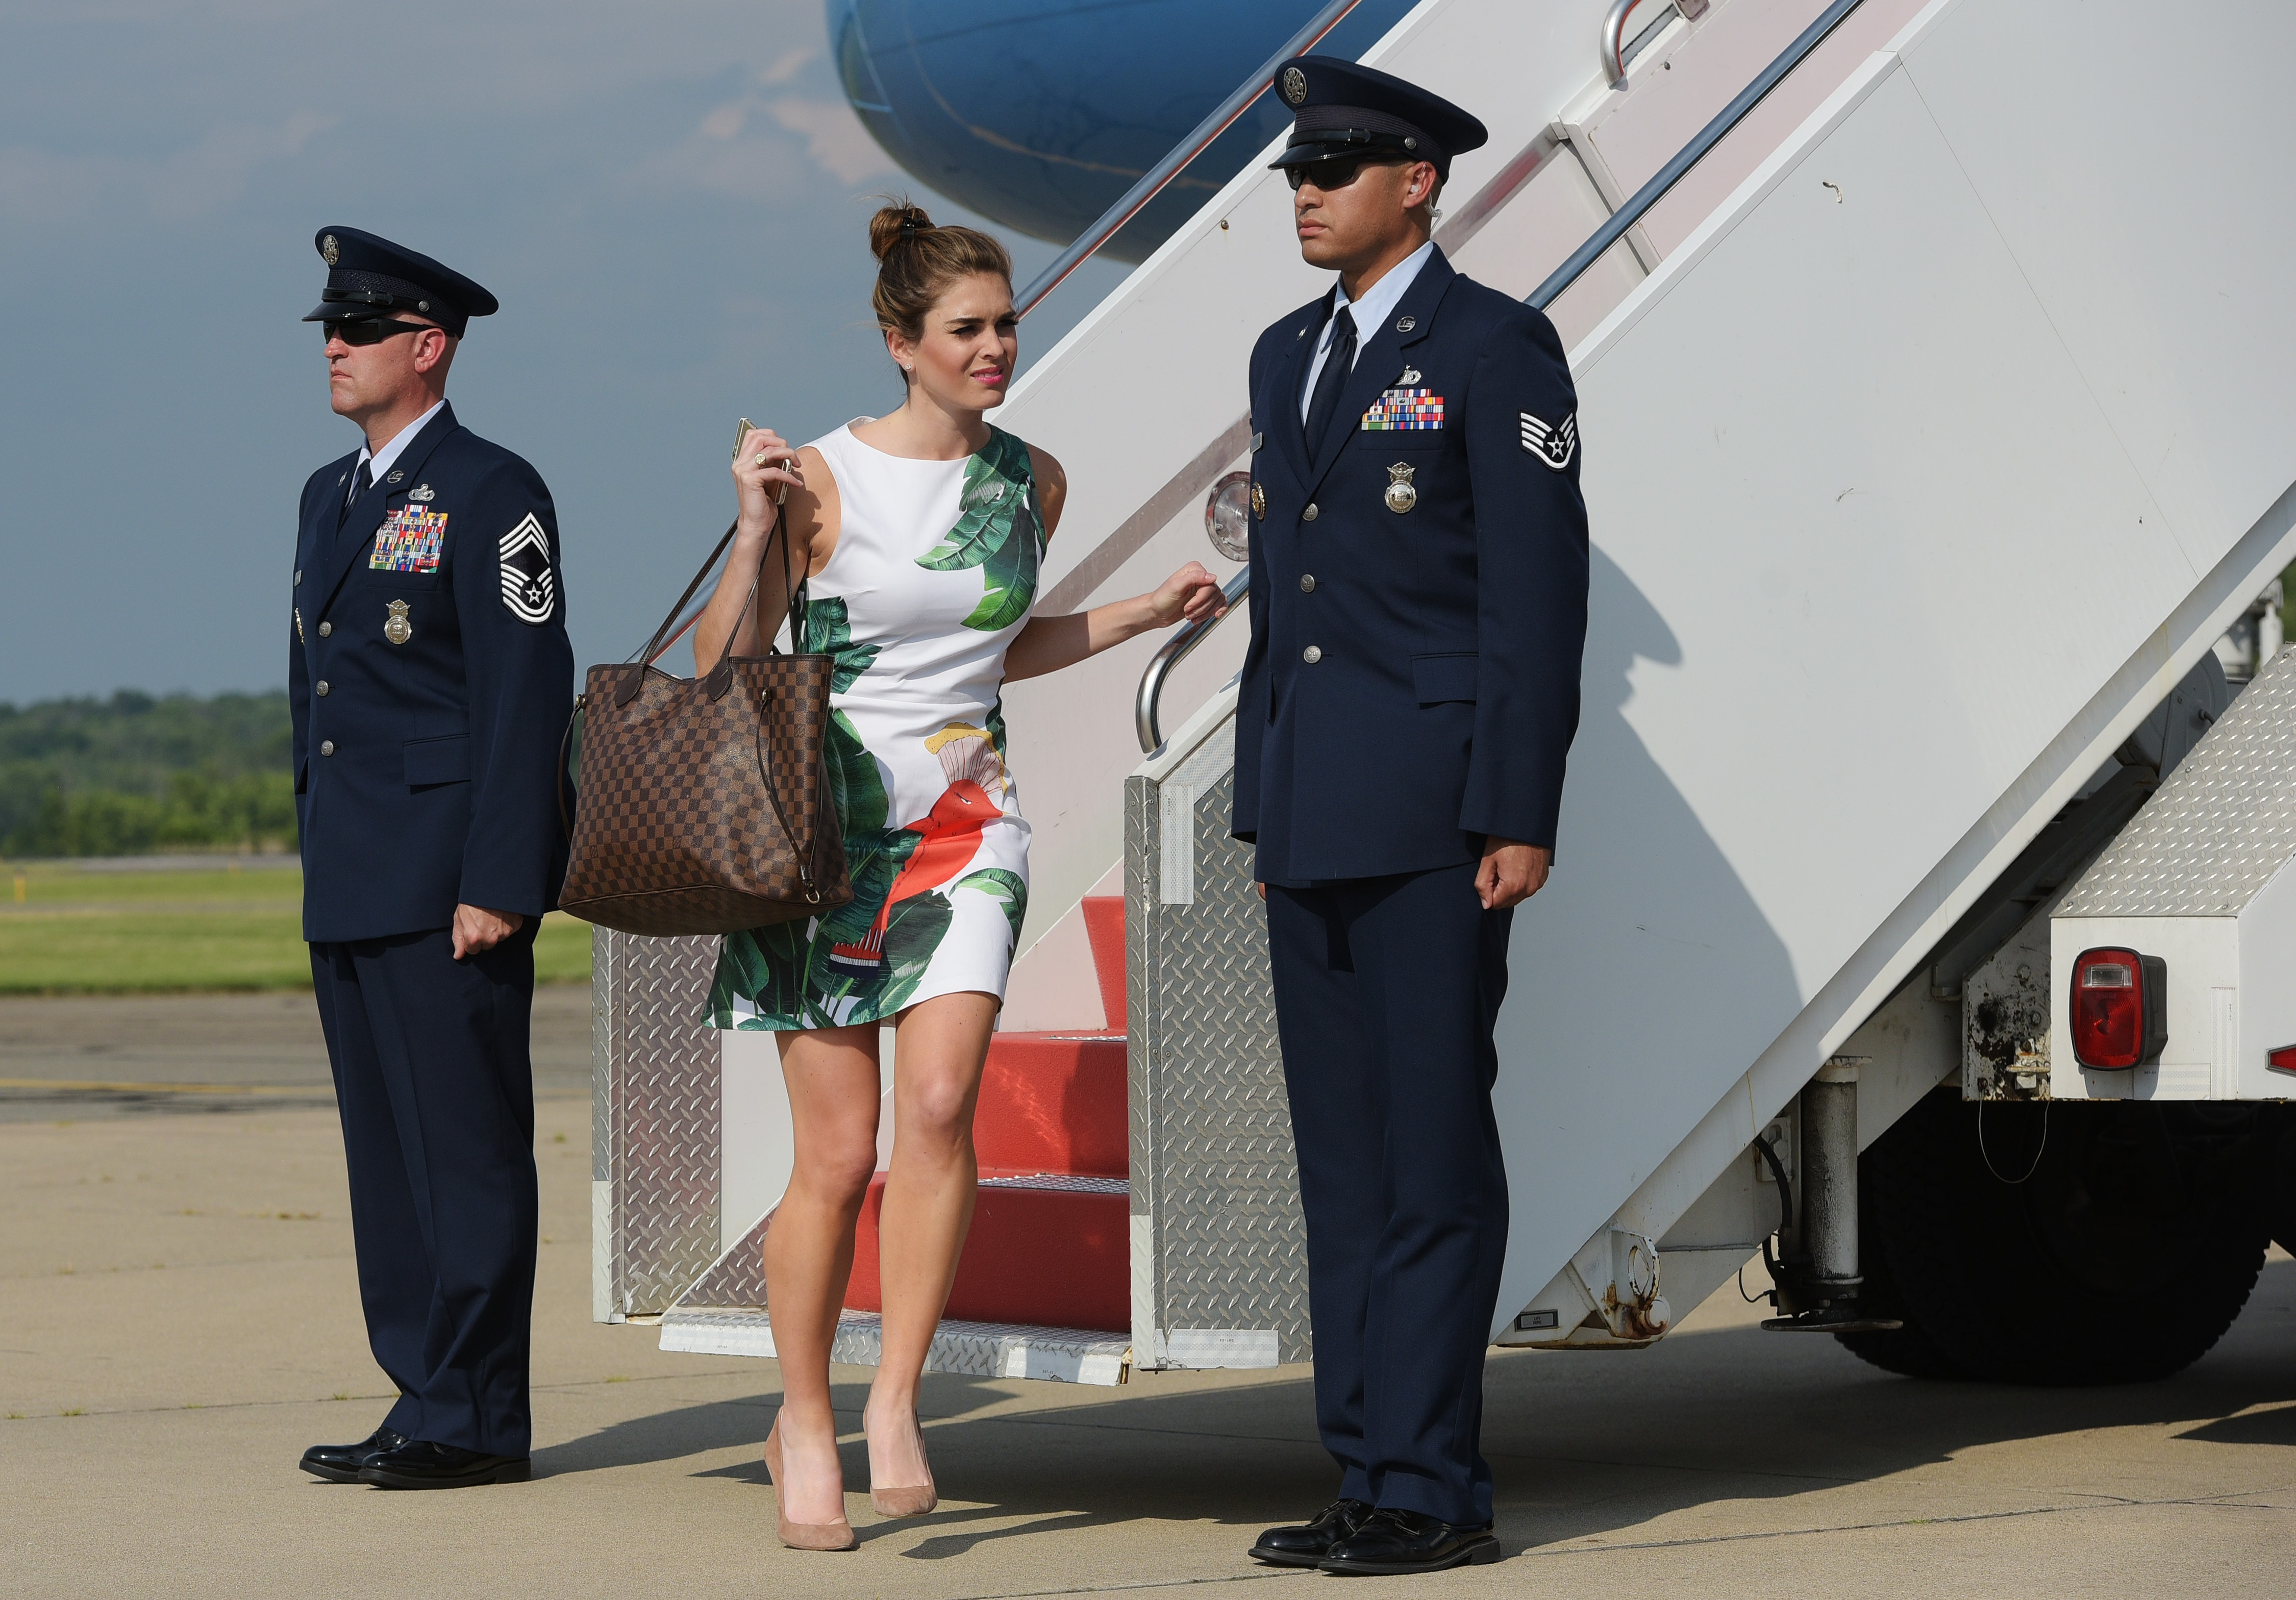 Hope Hicks steps off off Air Force One upon arrival in Morristown, New Jersey on June 30, 2017. (Mandel Ngan/AFP/Getty Images)